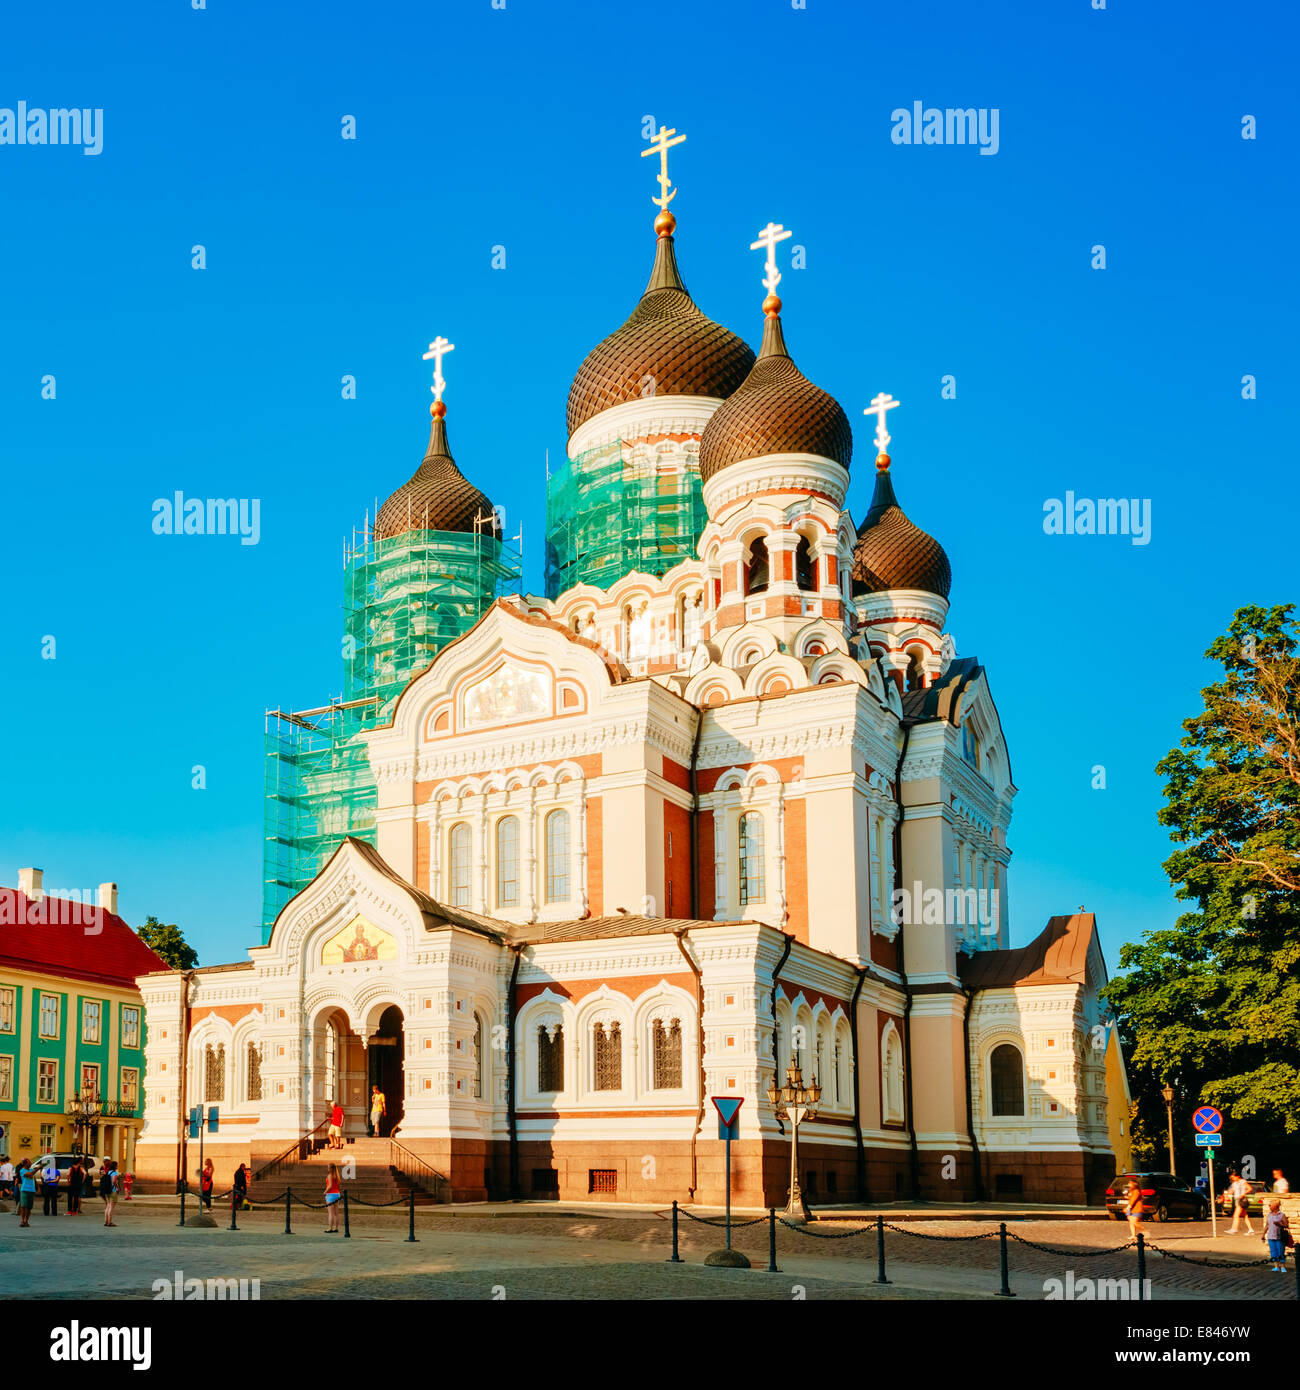 Alexander Nevsky Cathedral, An Orthodox Cathedral Church In Tallinn Old Town, Estonia. Summer Time - Stock Image